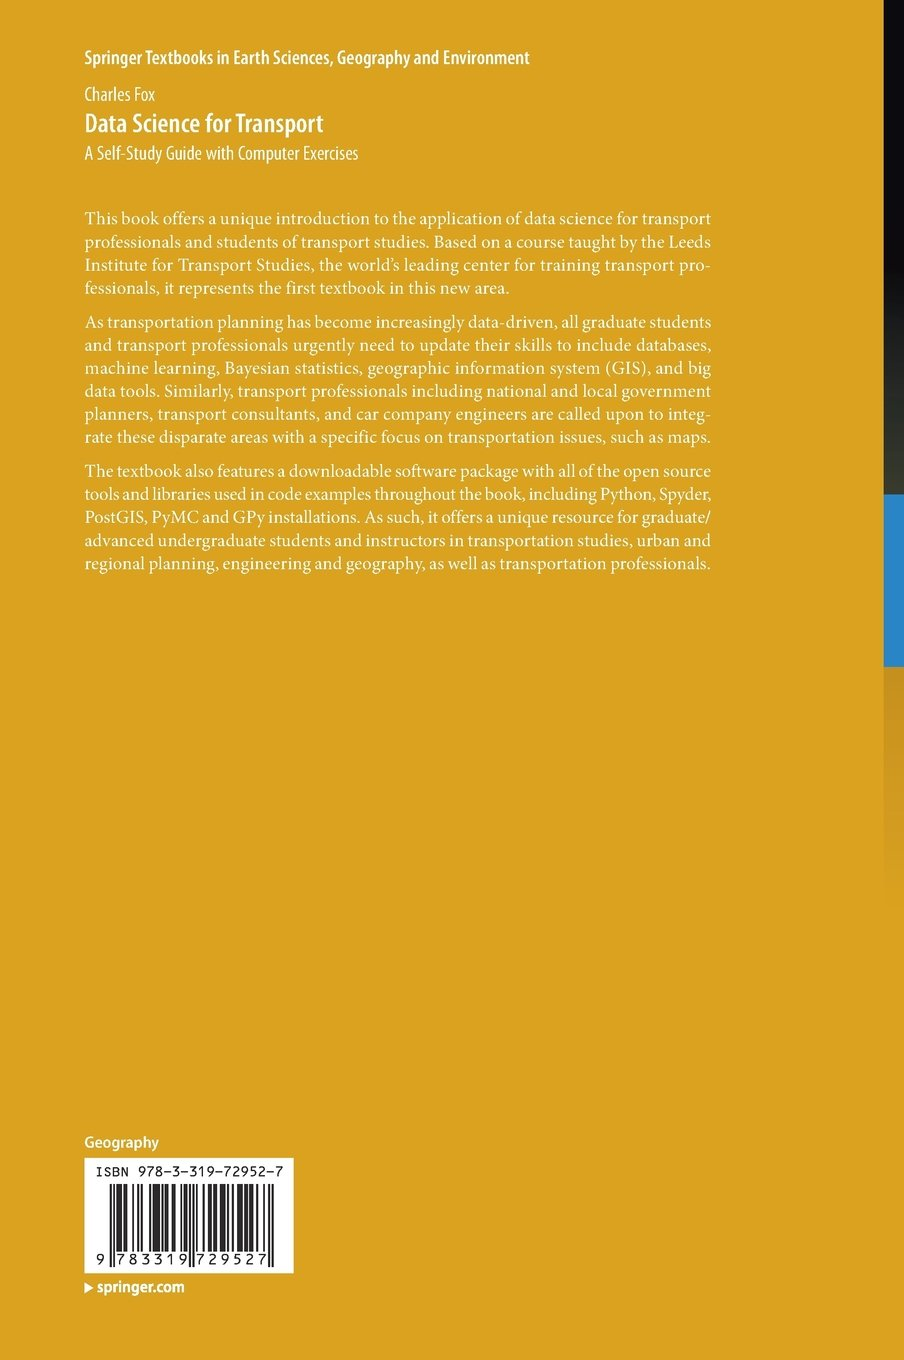 Data science for transport a self study guide with computer data science for transport a self study guide with computer exercises springer textbooks in earth sciences geography and environment charles fox fandeluxe Images